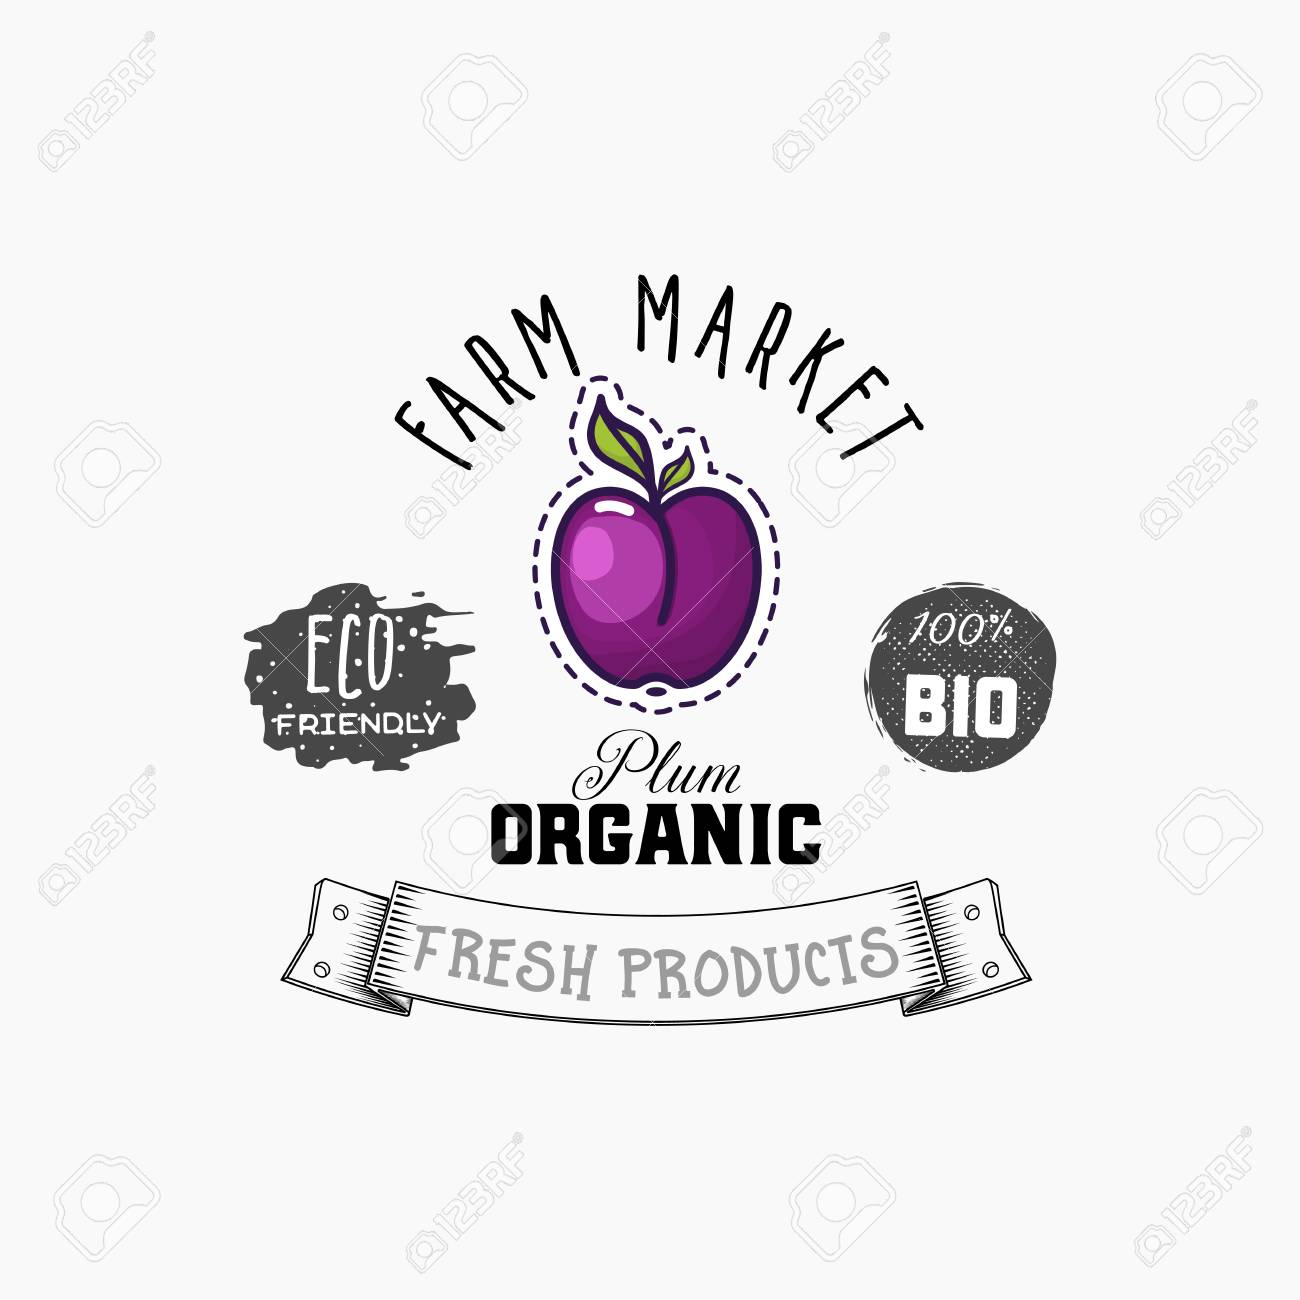 Bio sticker and eco products. Plum web element, Isolated Vector. - 104577025